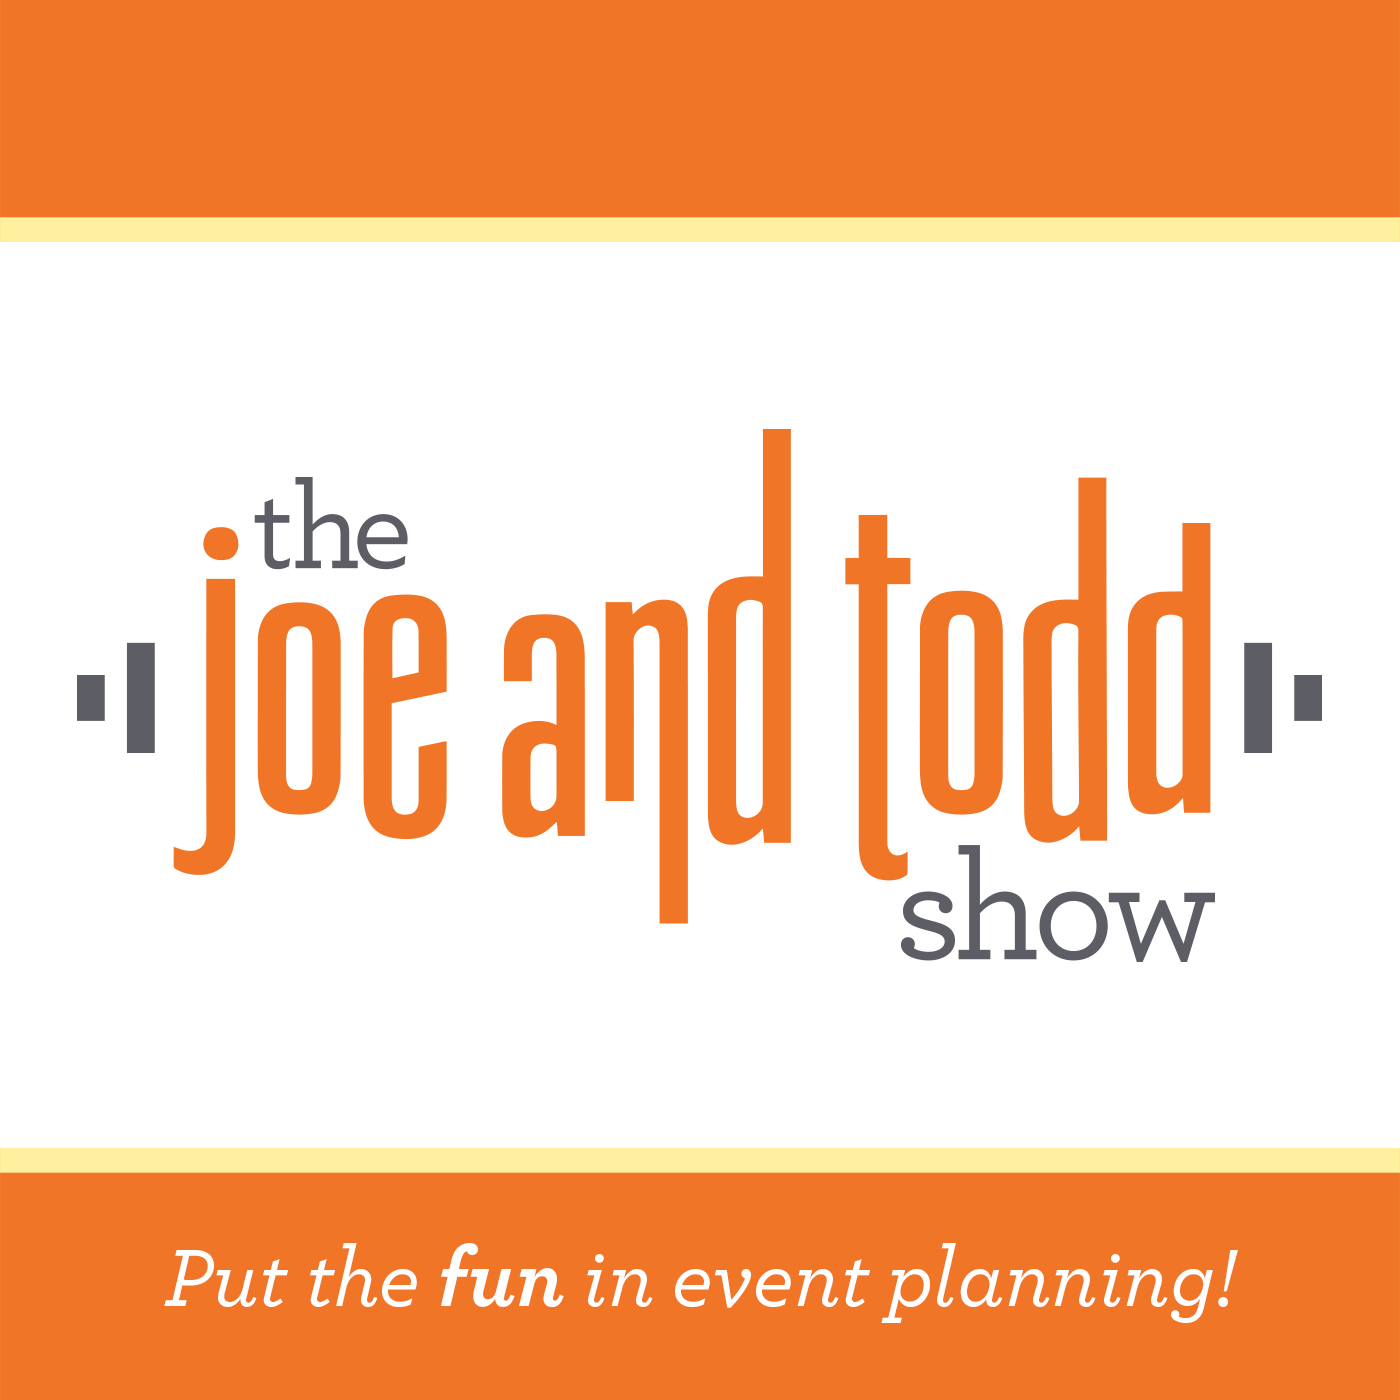 The Joe and Todd Show show art